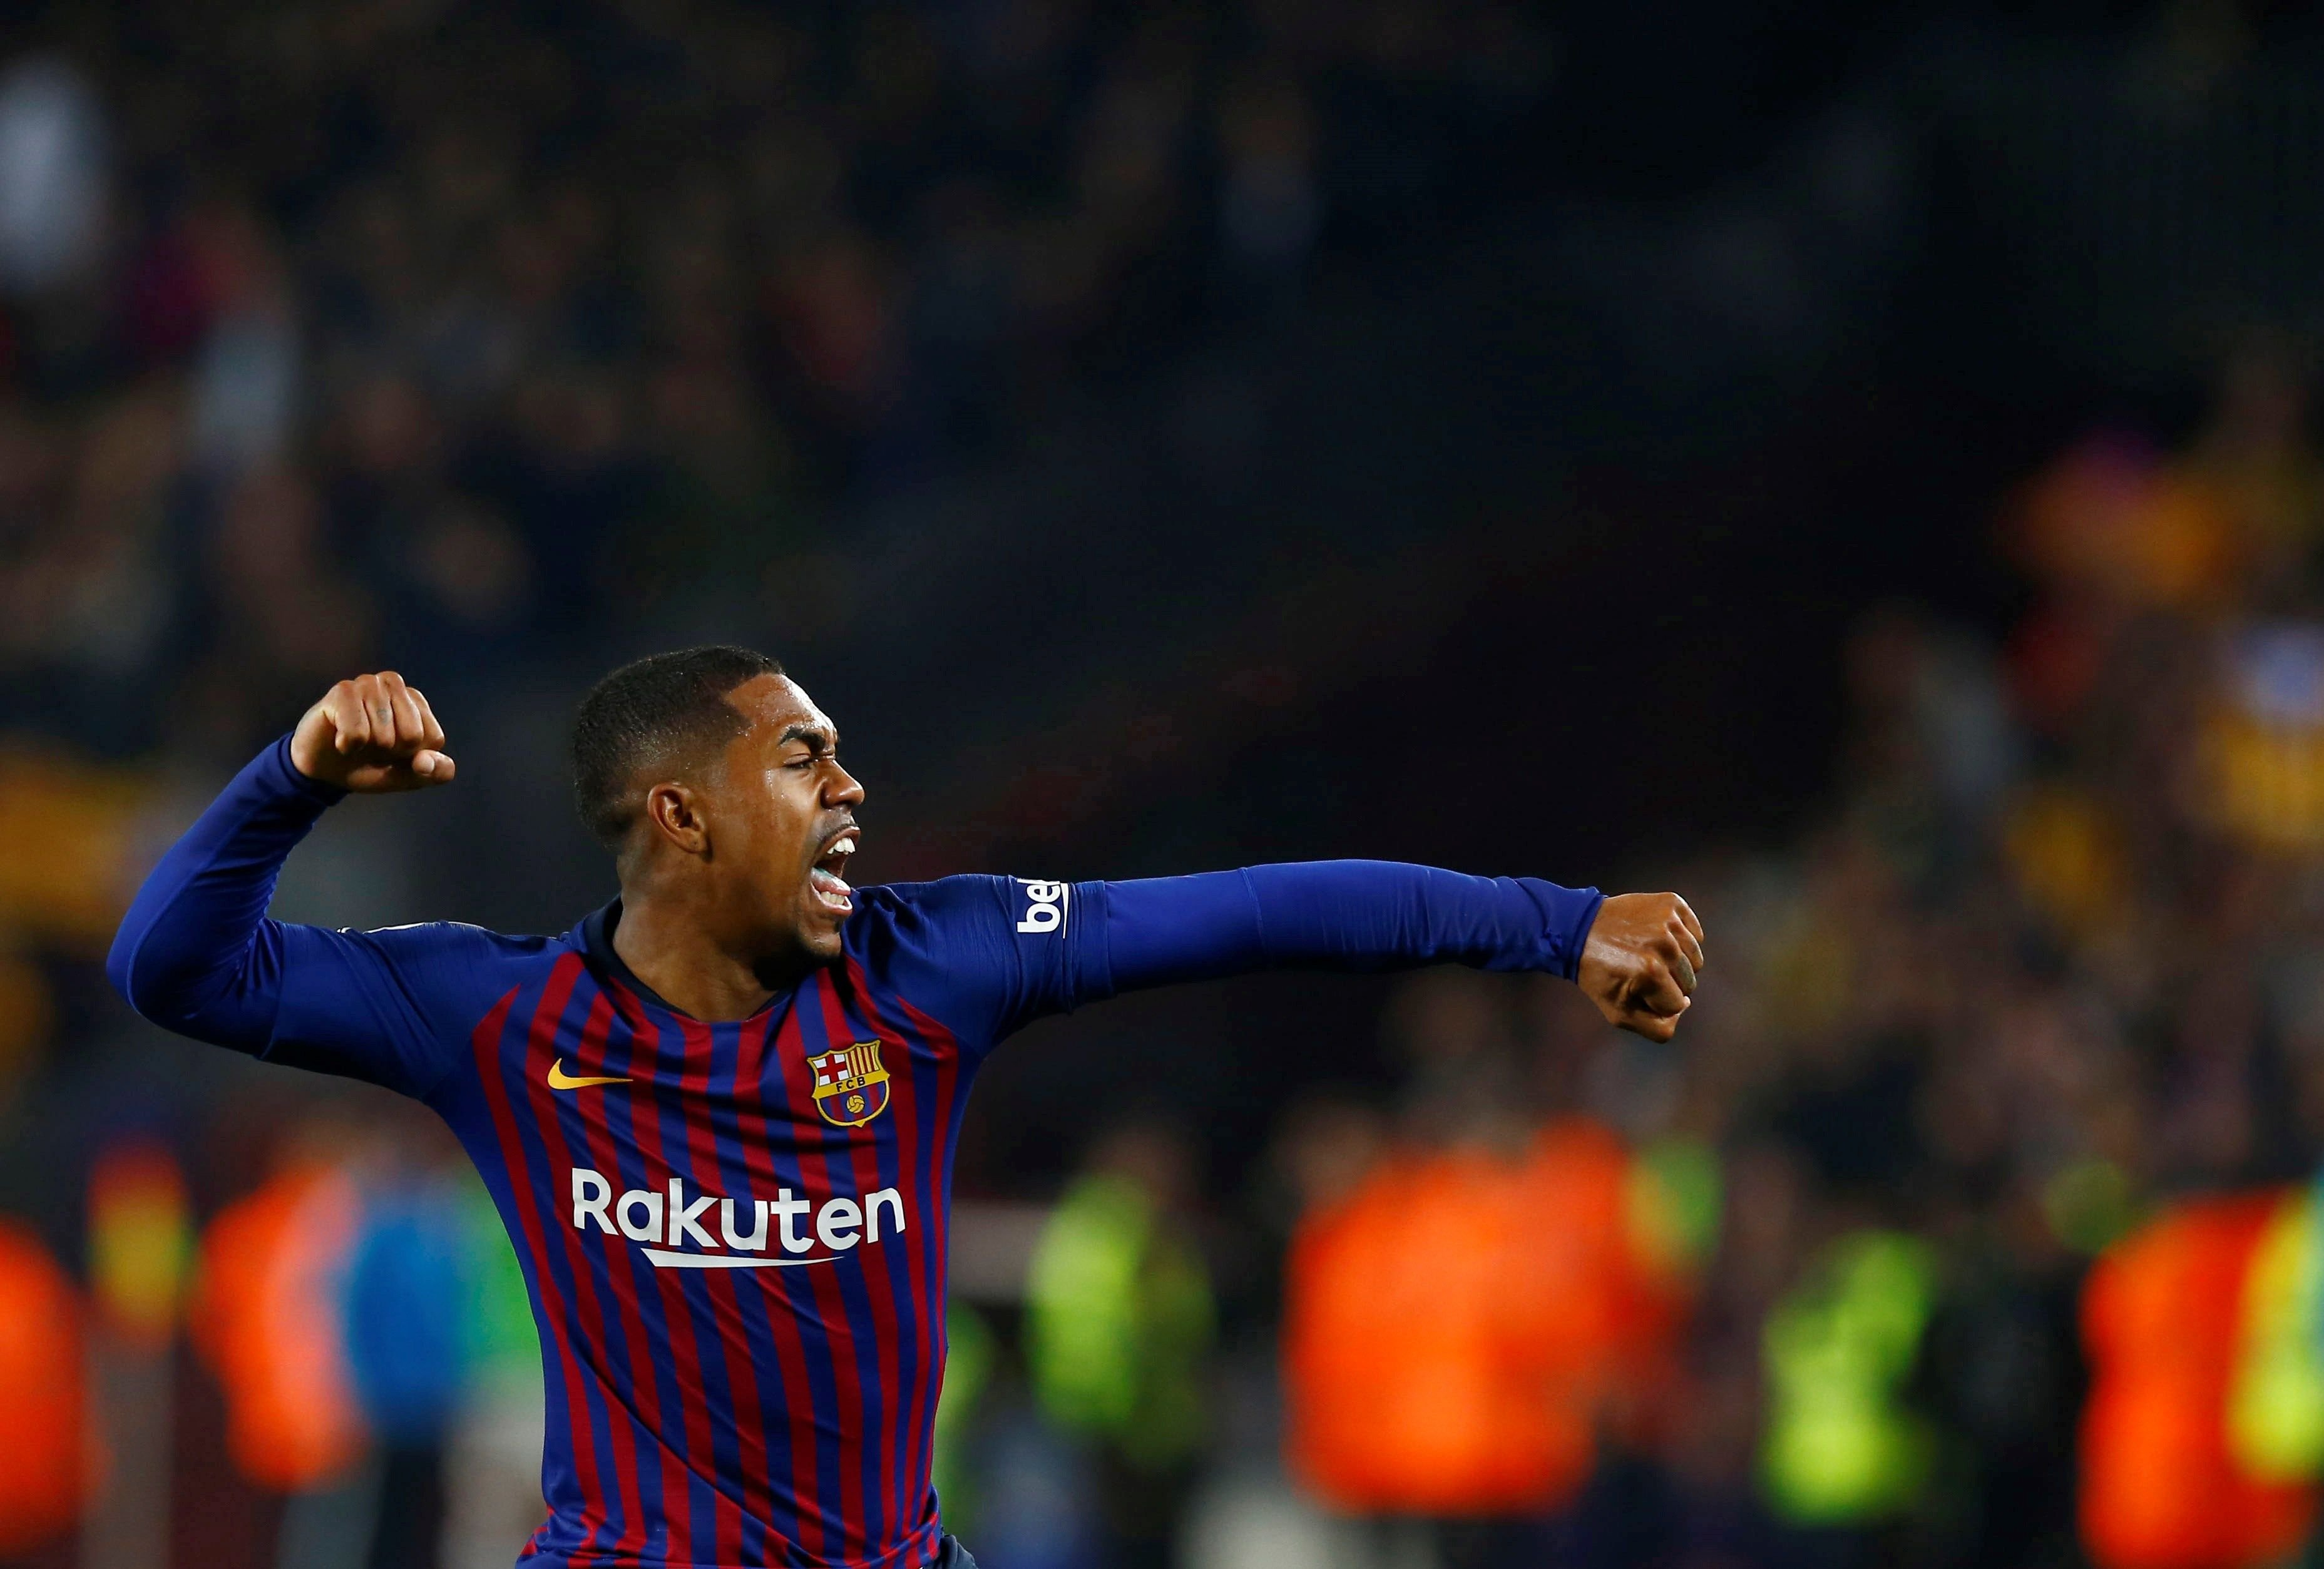 Malcom set to leave Barça this summer after just a year